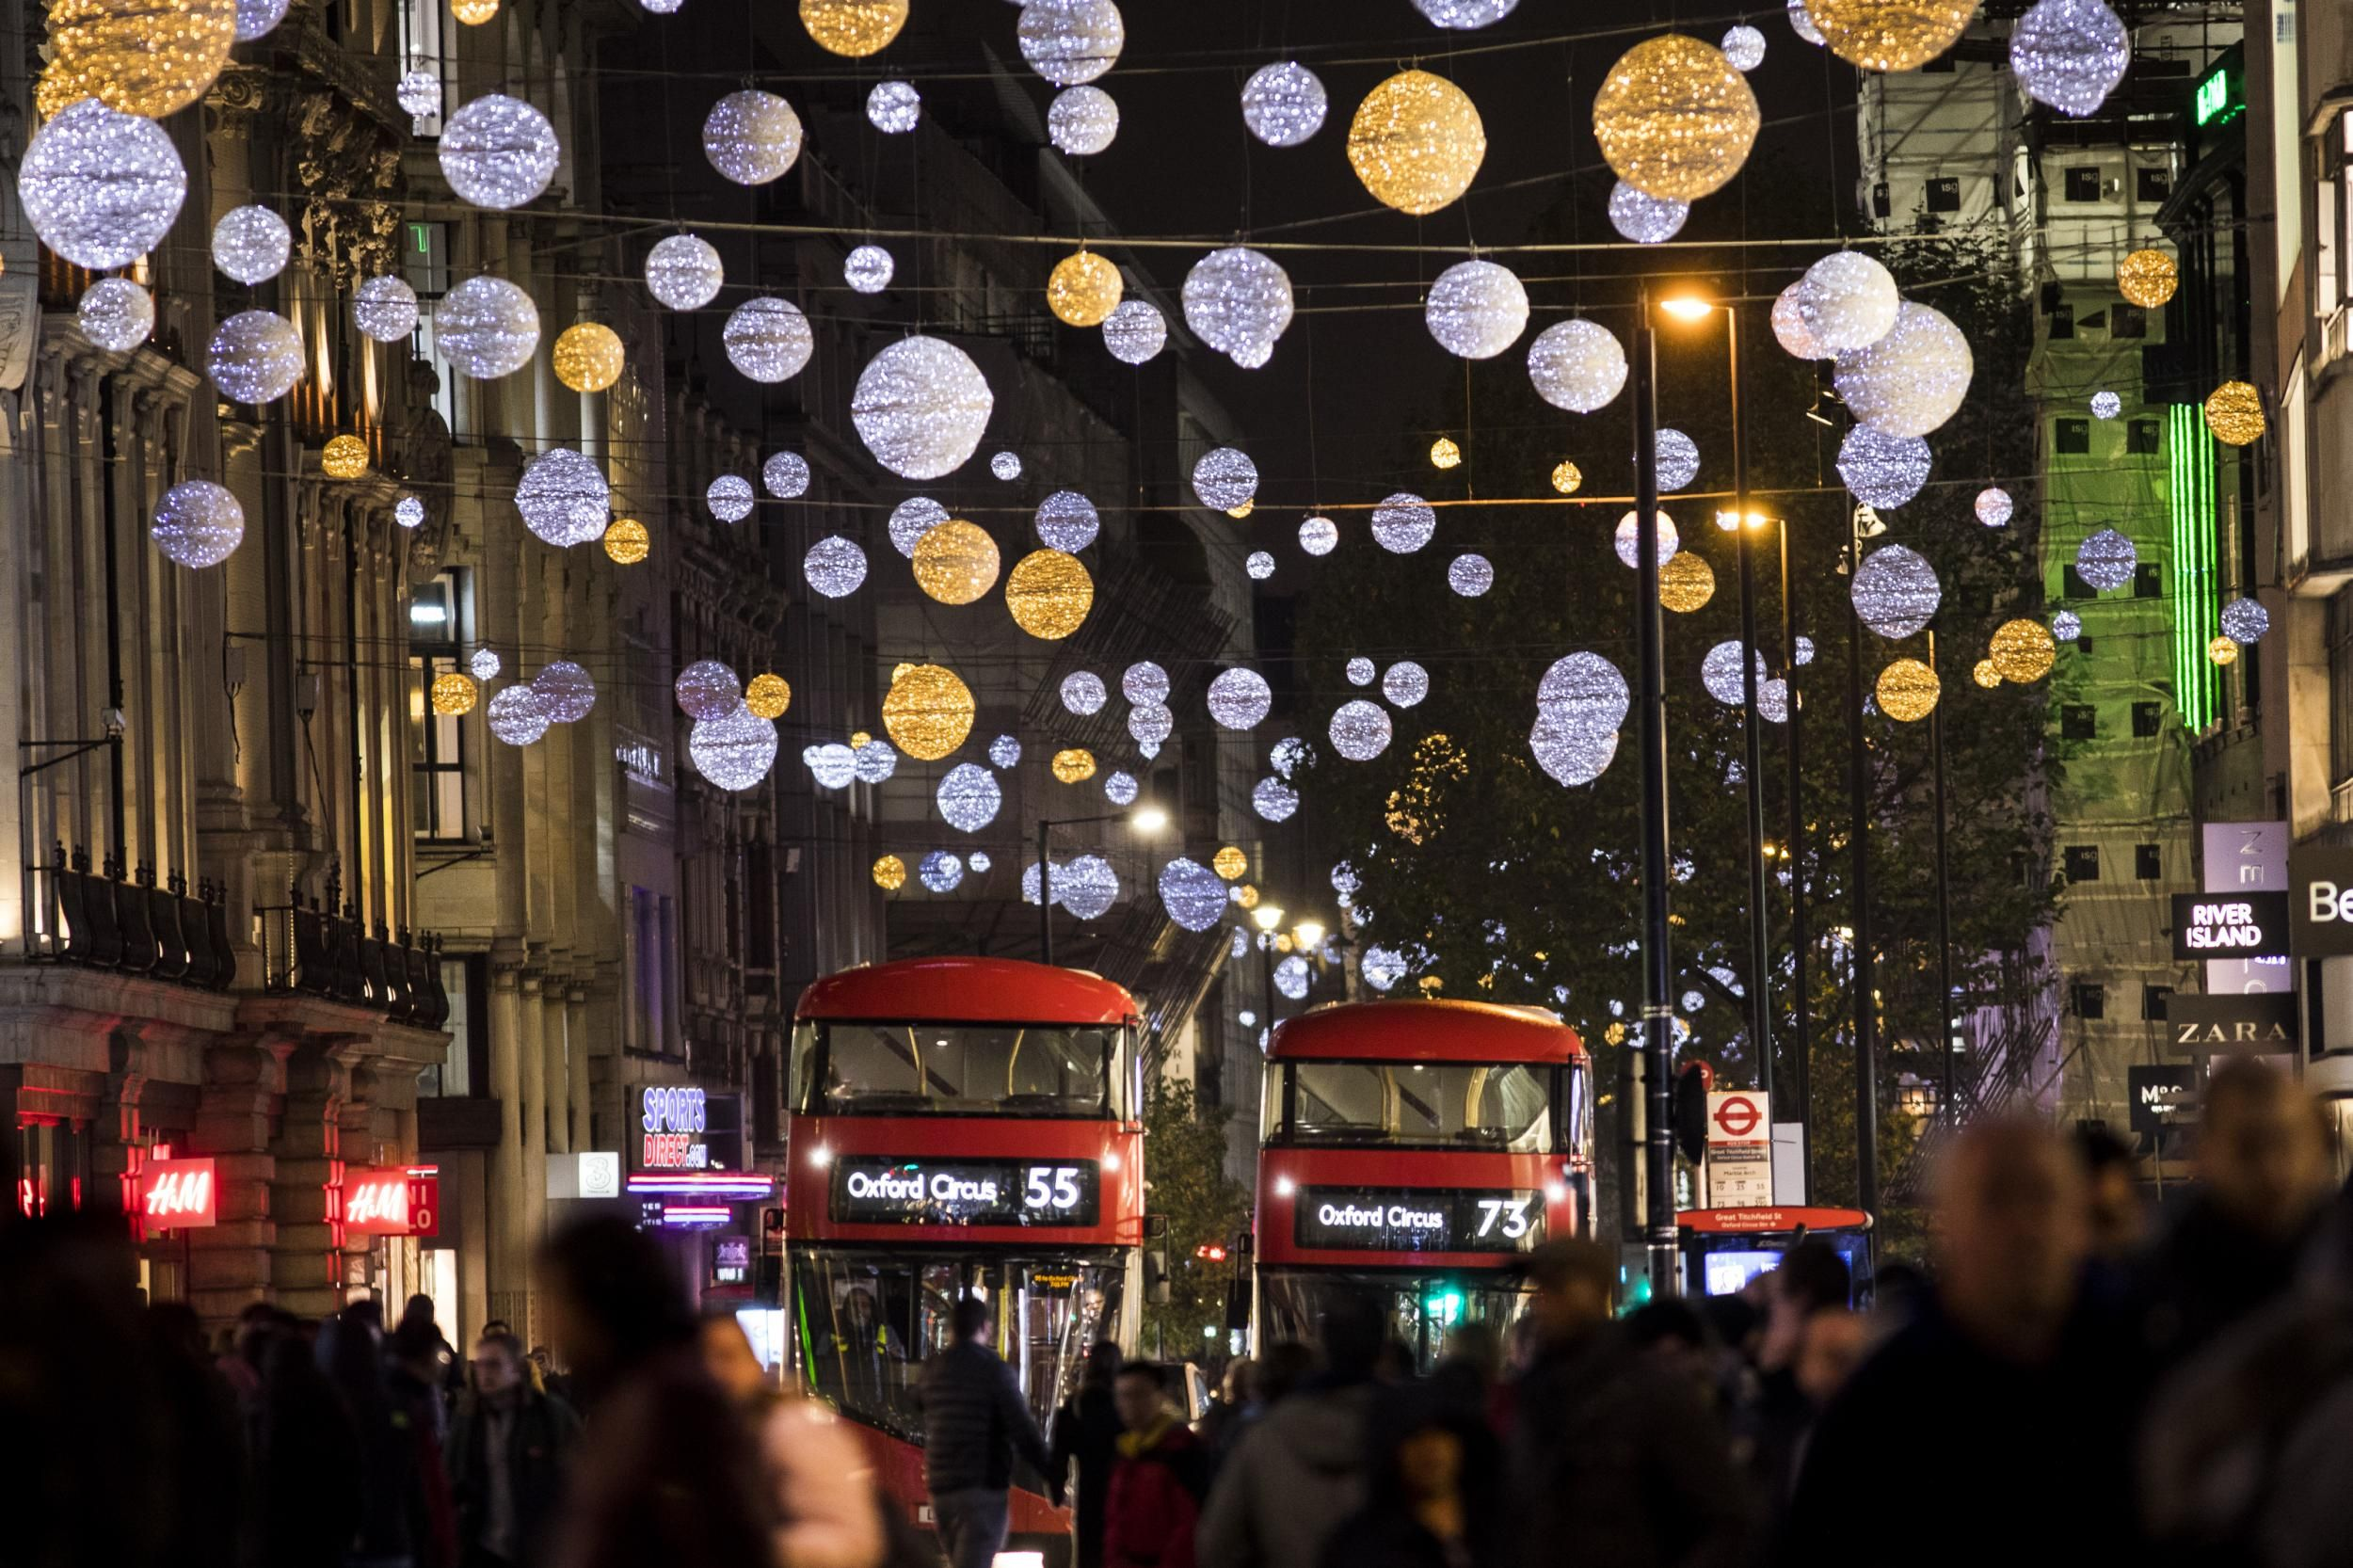 Oxford Street Xmas Lights 2019 Oxfordstreetxmaslights2019 Best Christmas Lights London Christmas Christmas Light Displays